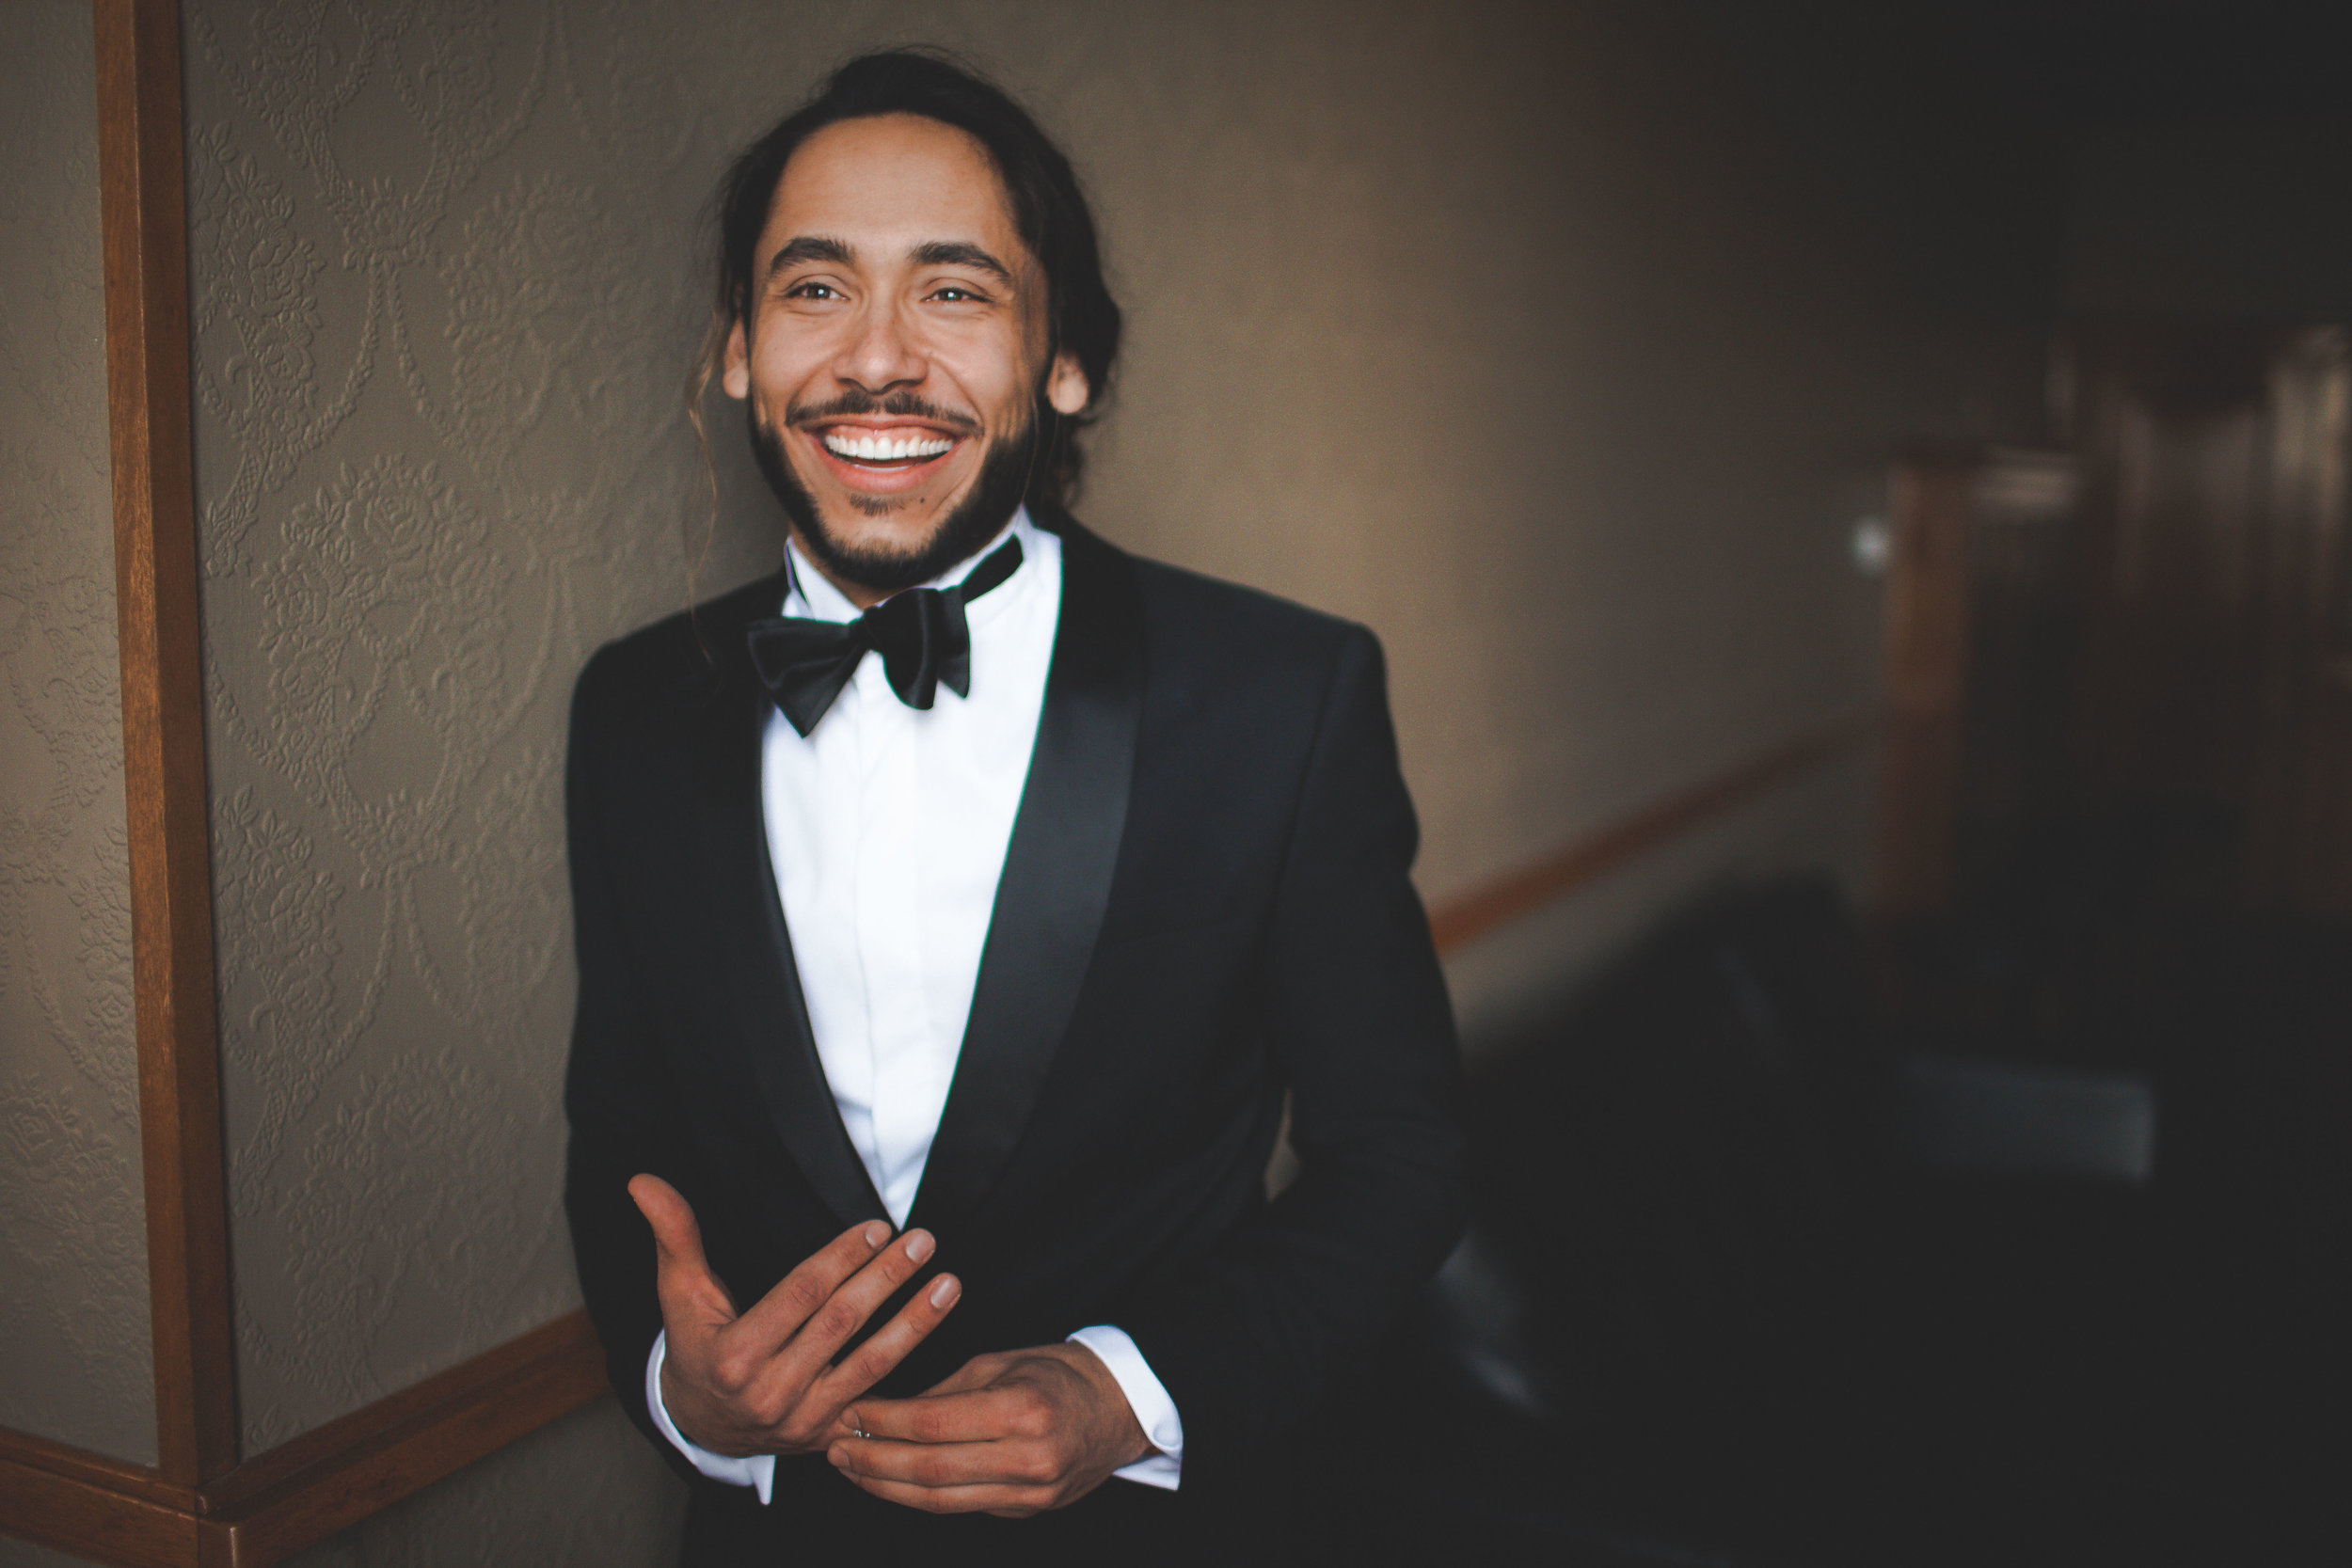 groom spokane wedding tux